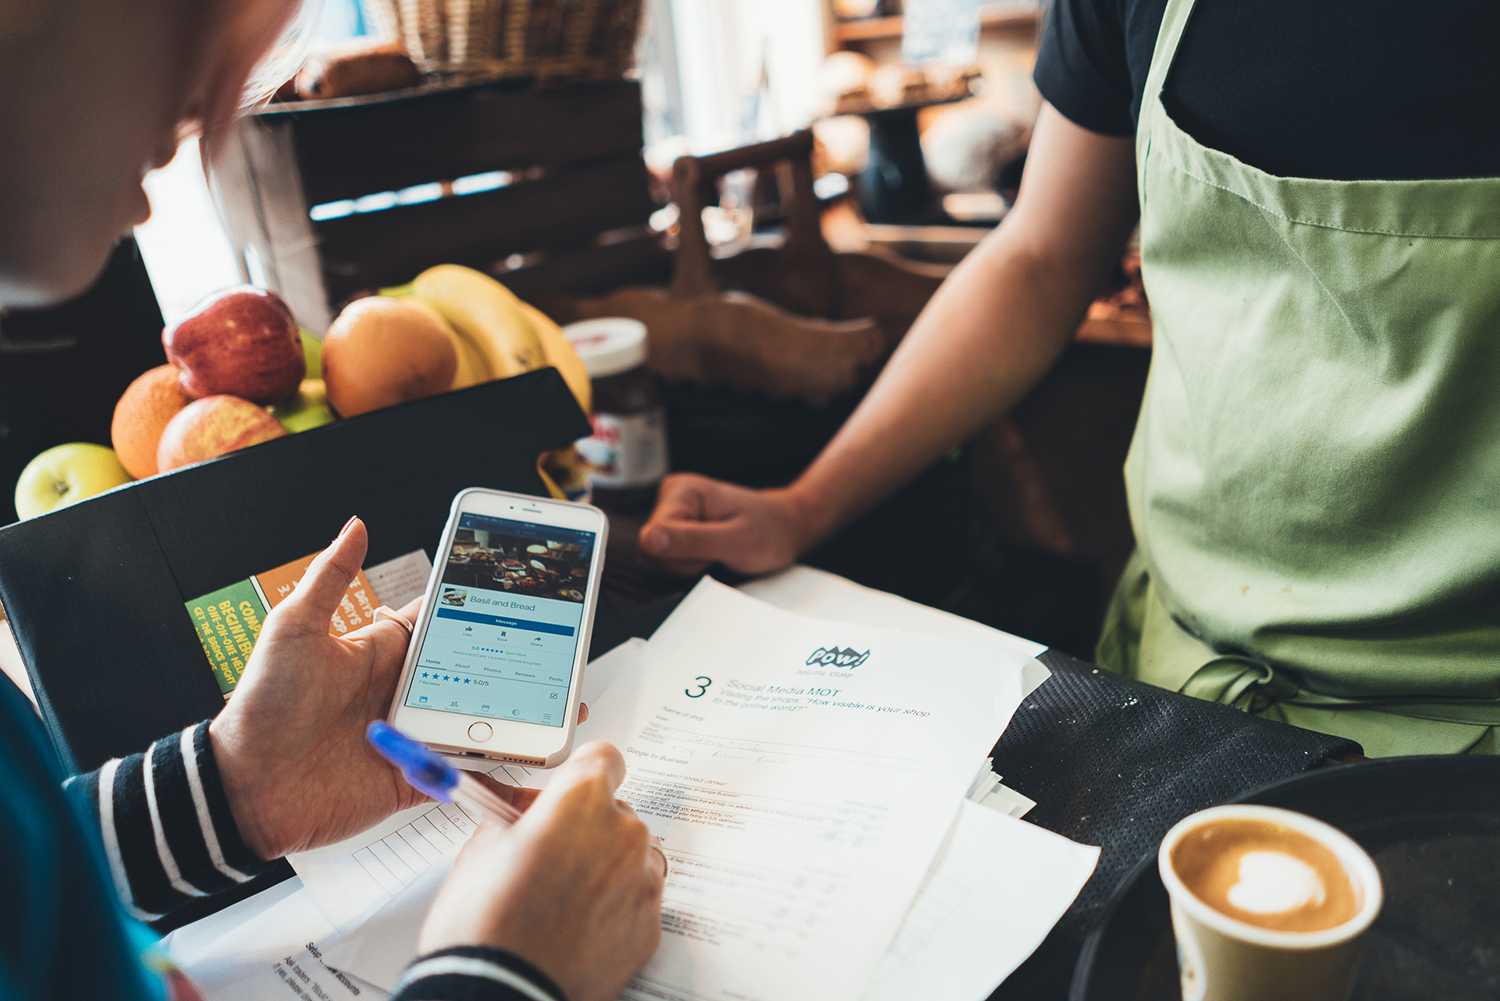 Consultation of local high street businesses about digital marketing needs